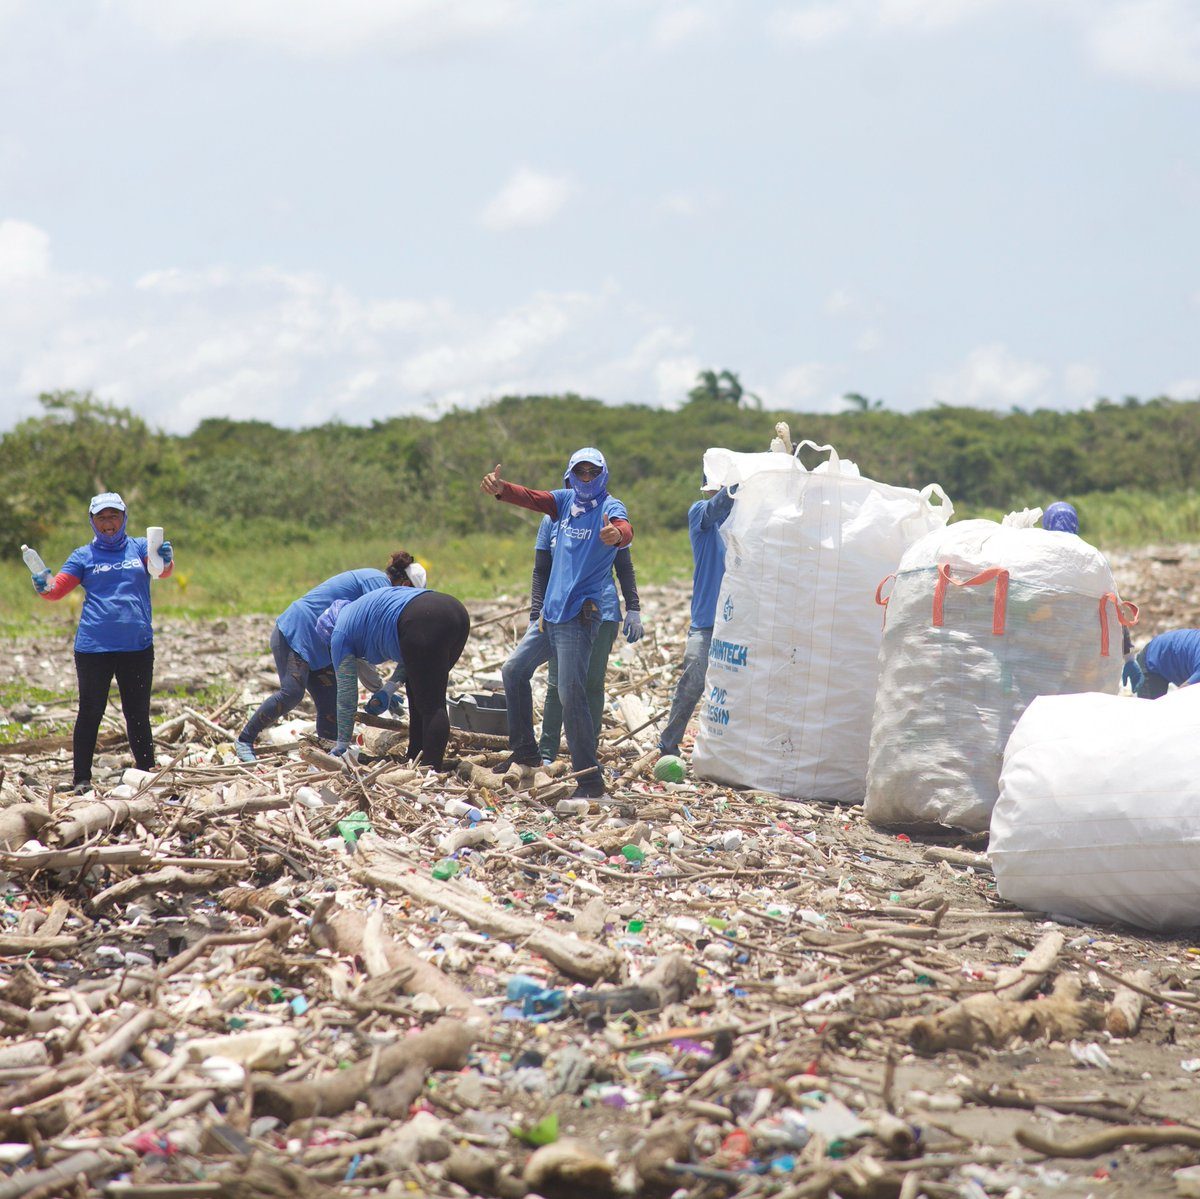 Team Guatemala has officially recovered 1️⃣ million pounds of trash! Our professional cleanup crews have been recovering trash from the ocean, rivers, and coastlines in Guatemala since August 24th, 2020 and they just officially pulled their 1 MILLIONTH pound!